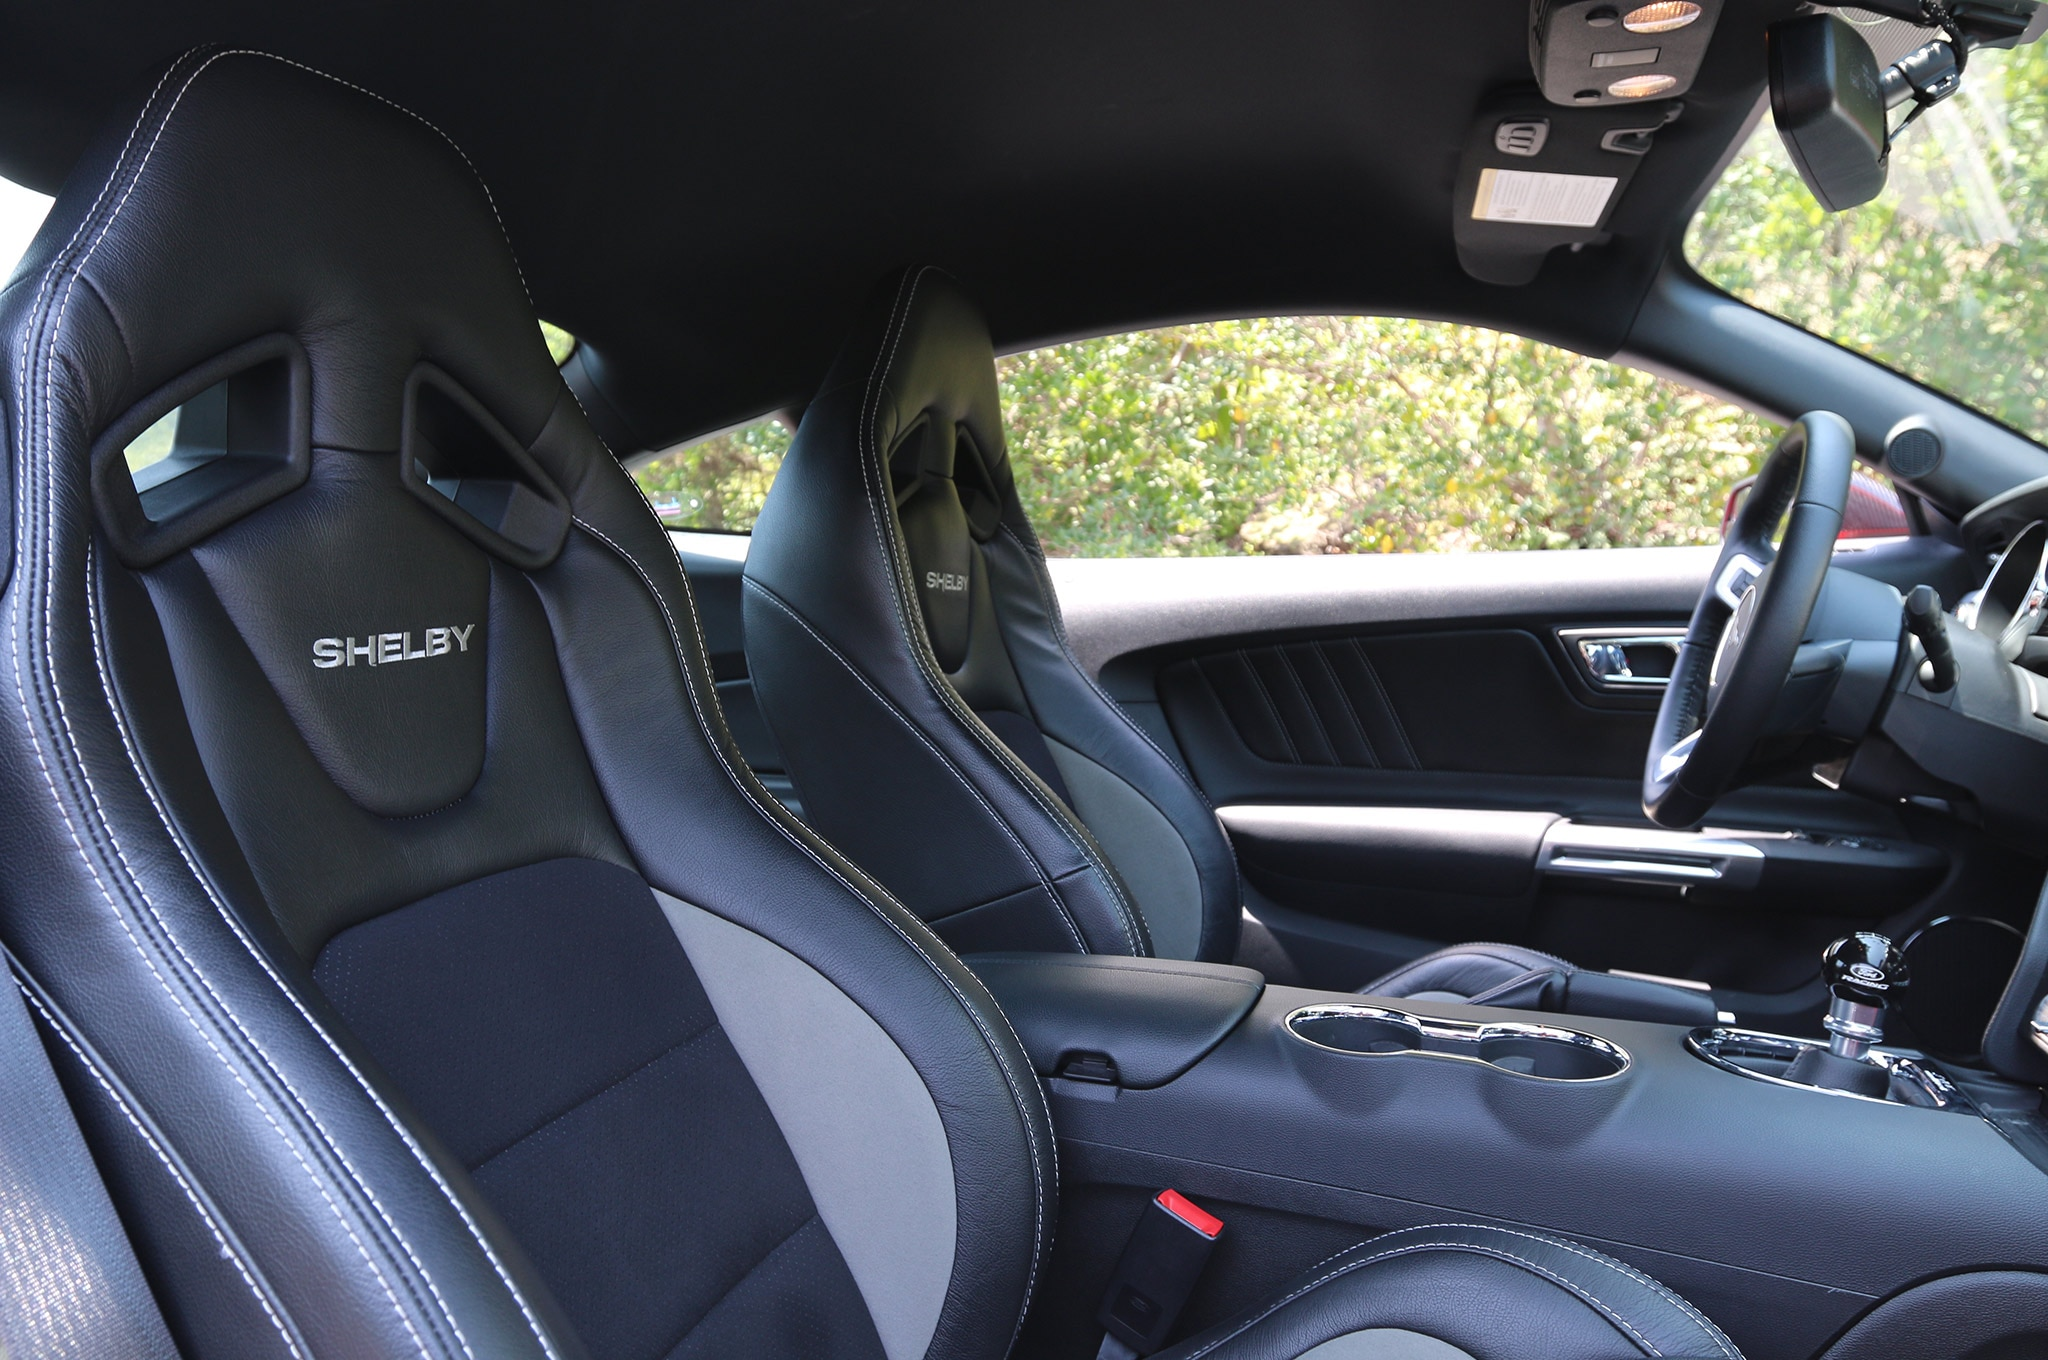 2015 Shelby Gt Mustang 44 Recaro Leather Seats Photo 119178782 Video First Look At The 650hp 2015 Shelby Gt S550 Mustang